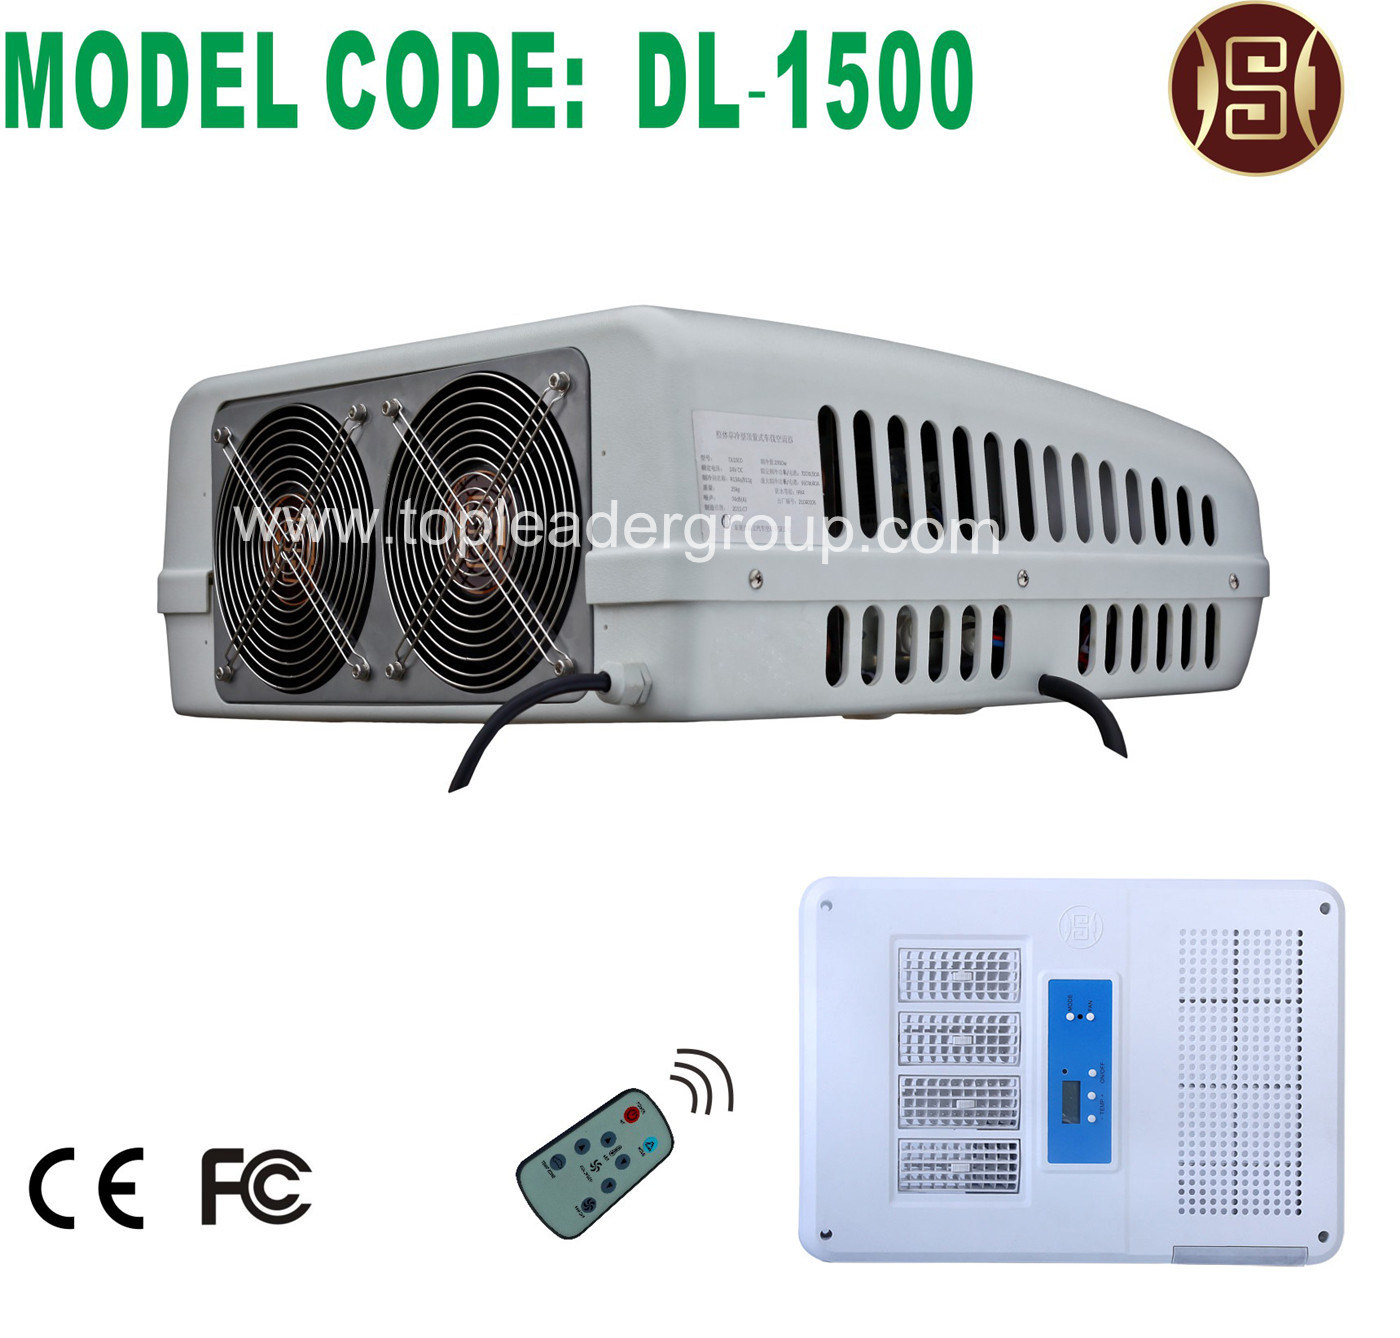 Auto Air Conditioner (24VDC) (DL-1500)